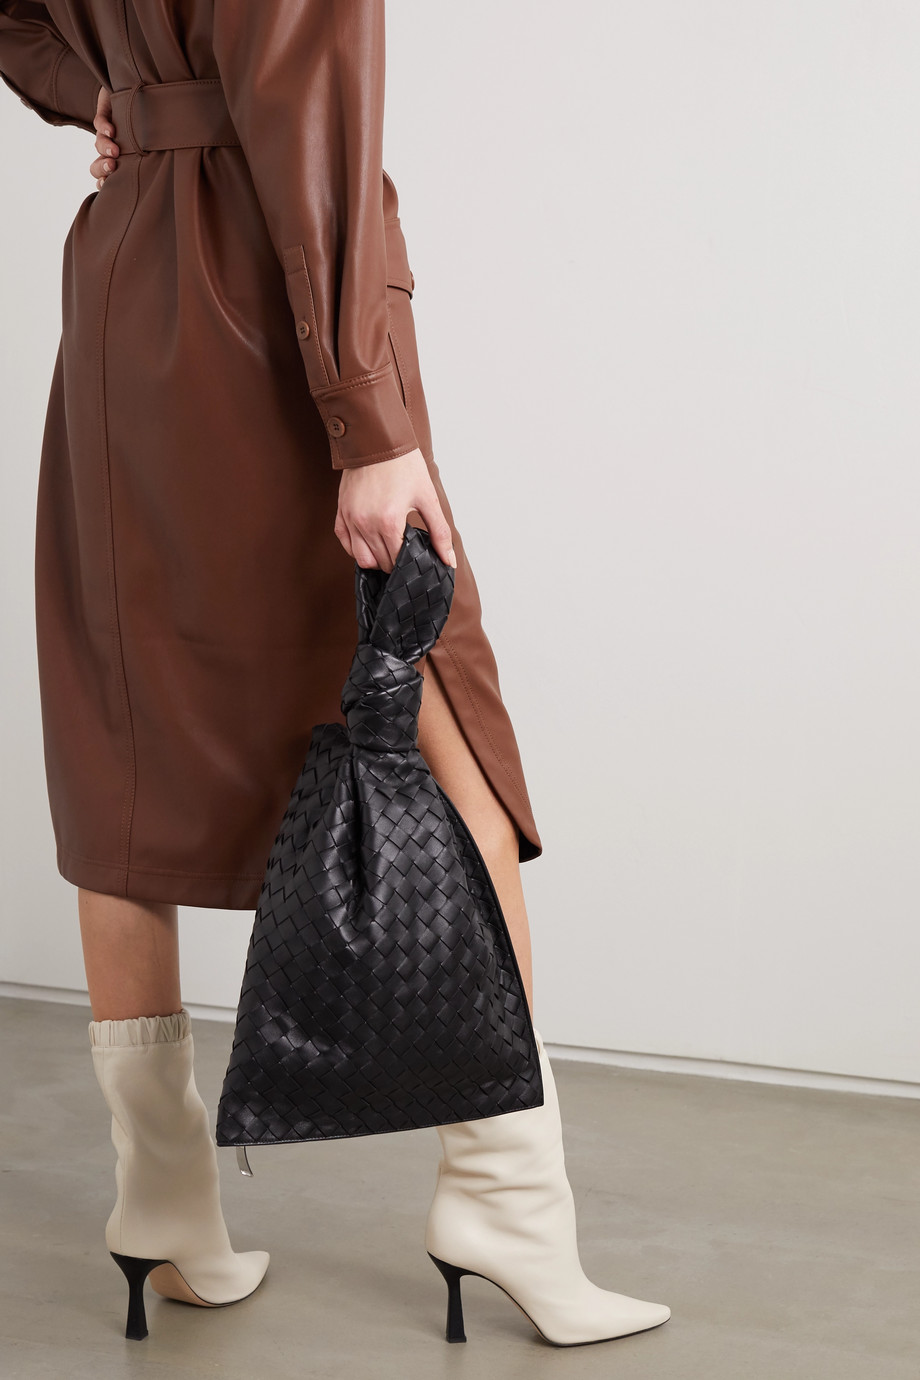 Bottega Veneta BV Twist knotted intrecciato leather clutch